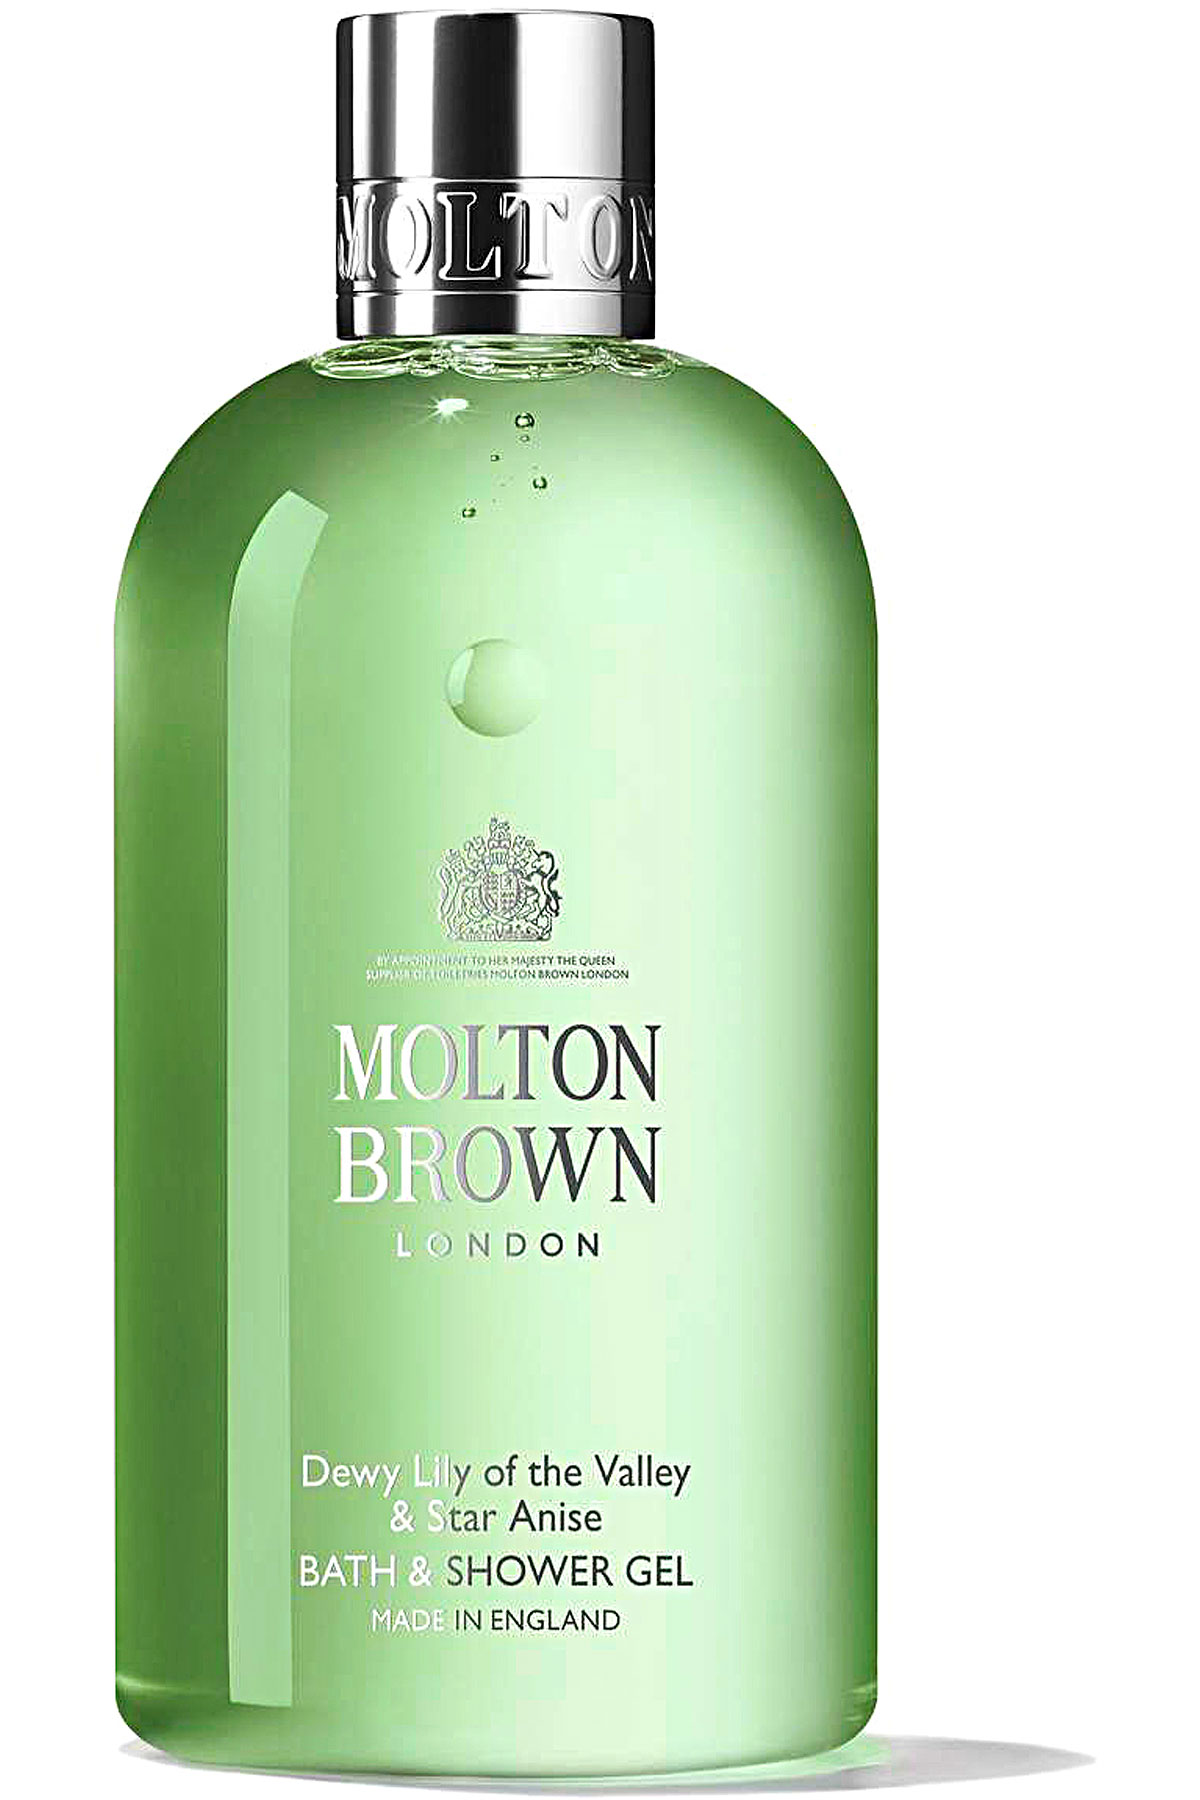 Molton Brown Beauty for Women, Dewy Lily Of The Valley & Star Anise - Bath & Shower Gel - 300 Ml, 2019, 300 ml